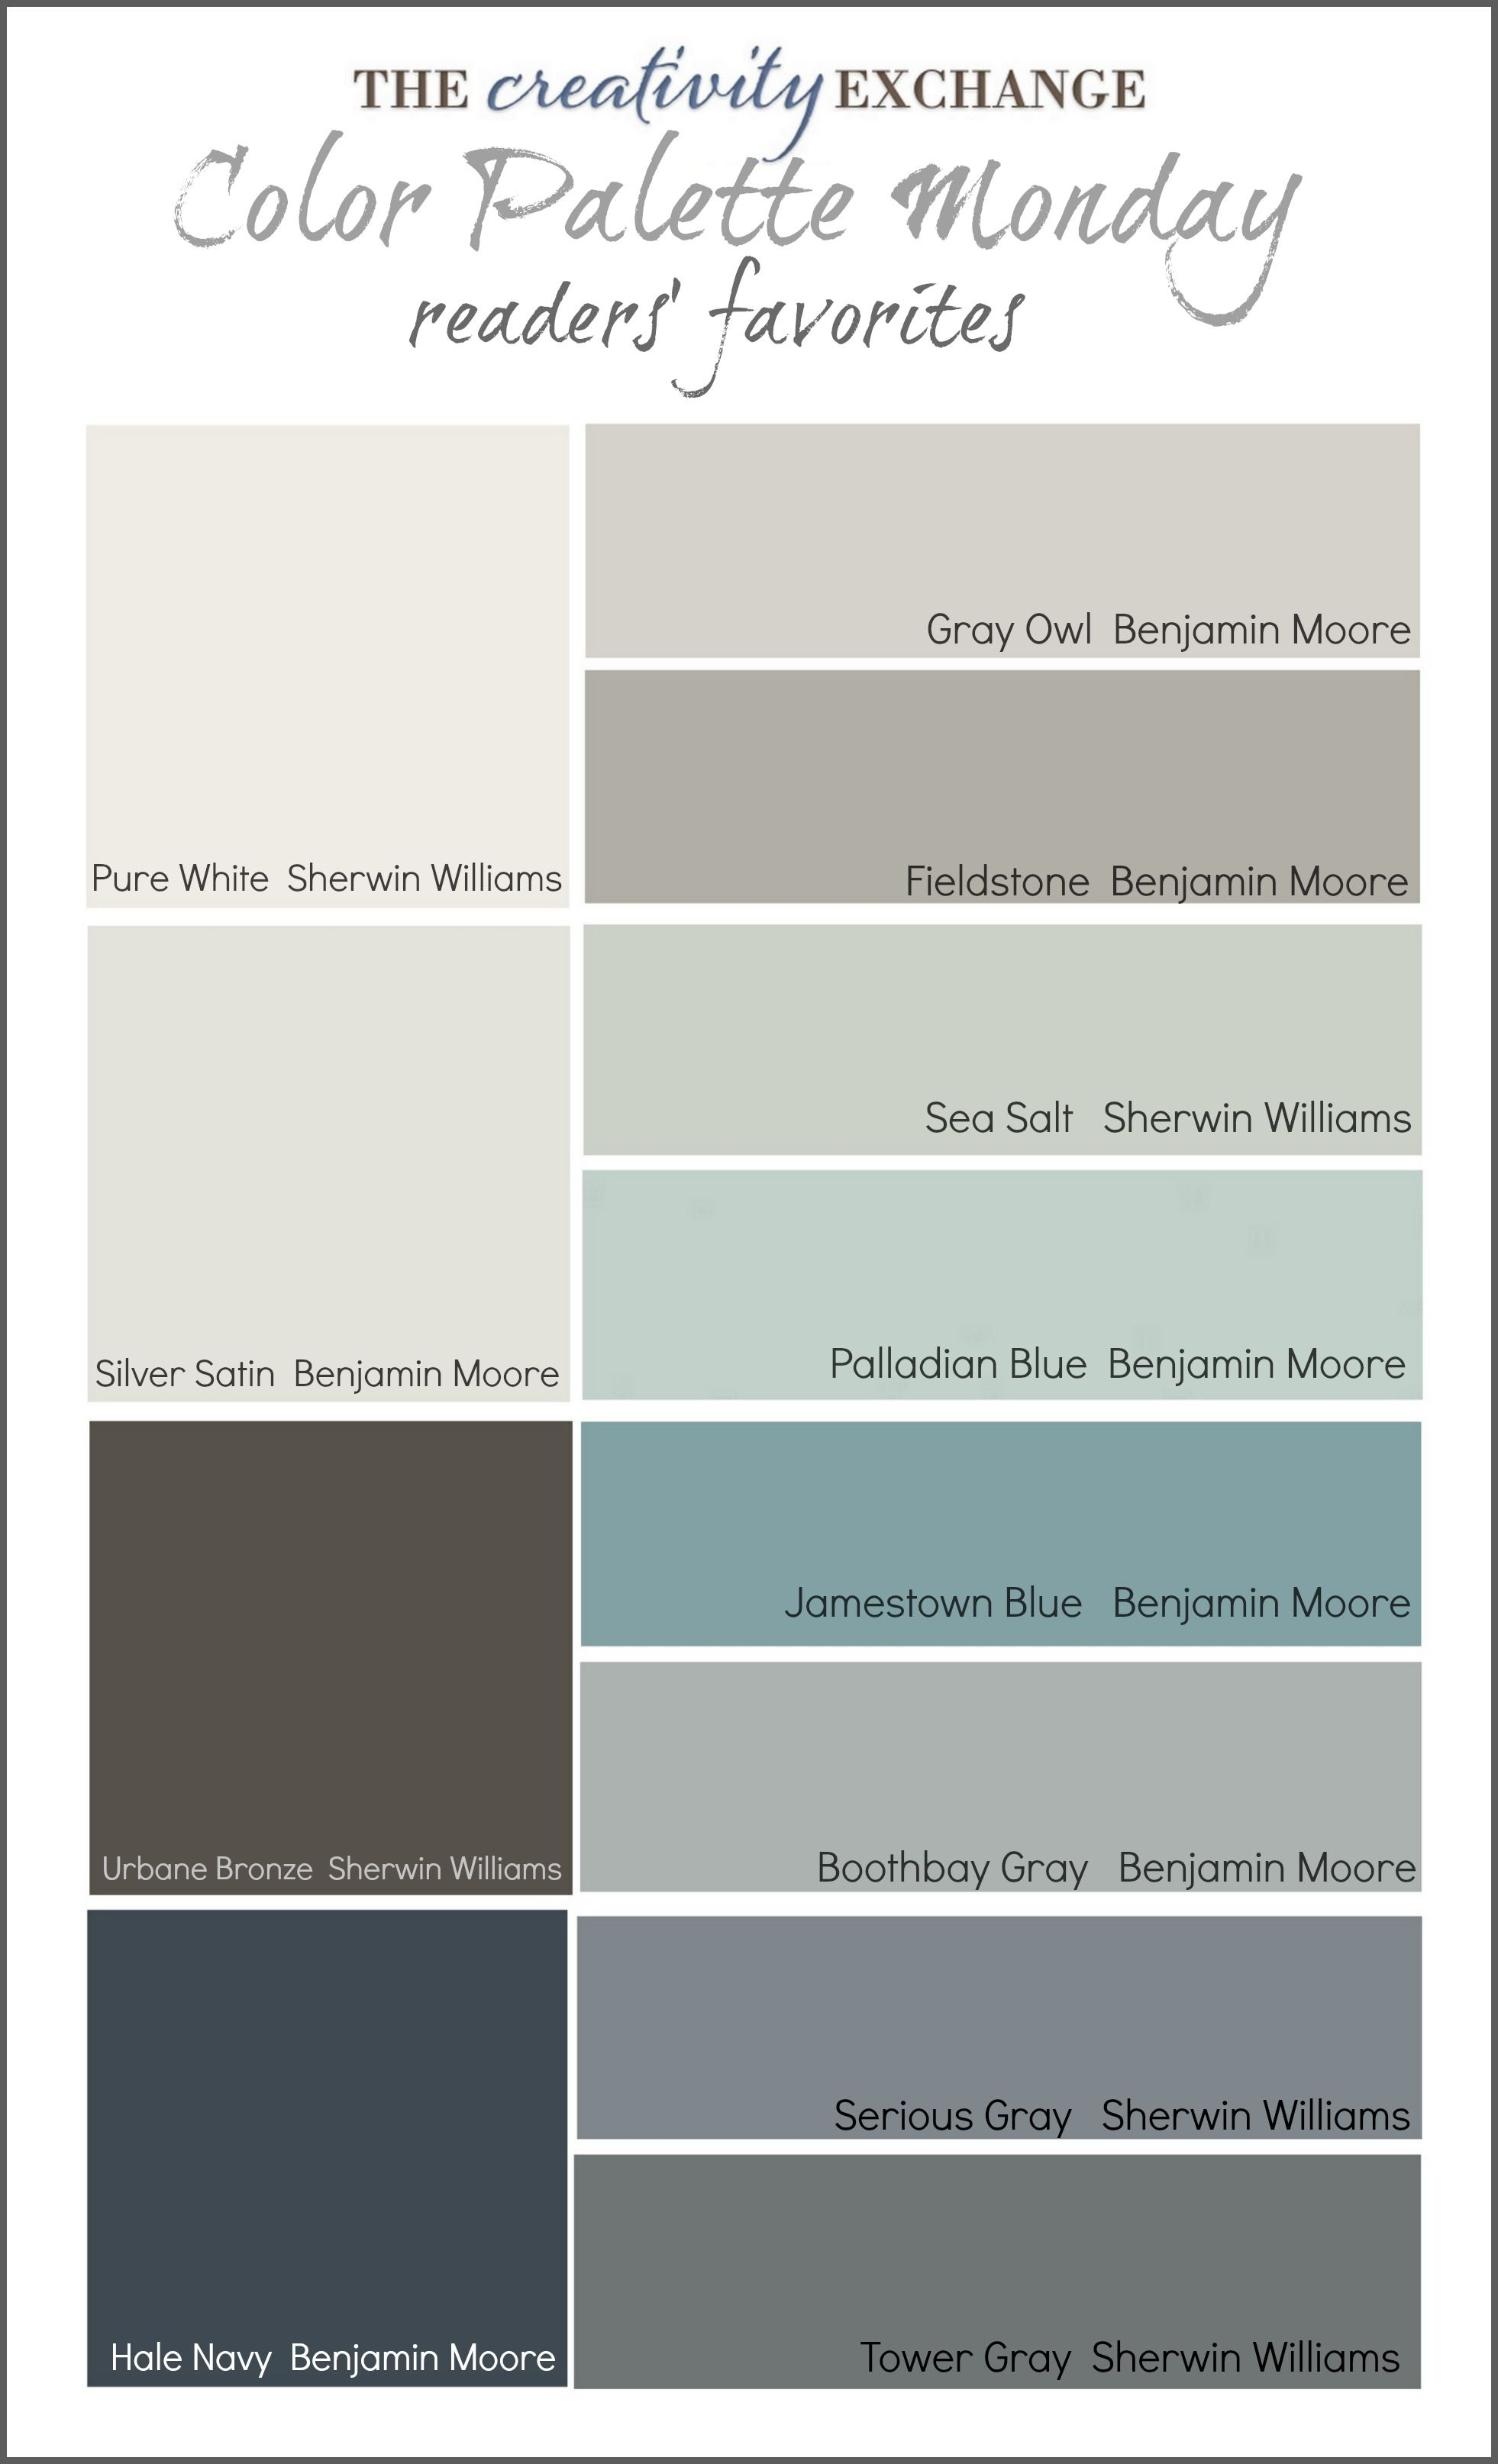 Readers 39 favorite paint colors color palette monday for Paint colors that go together